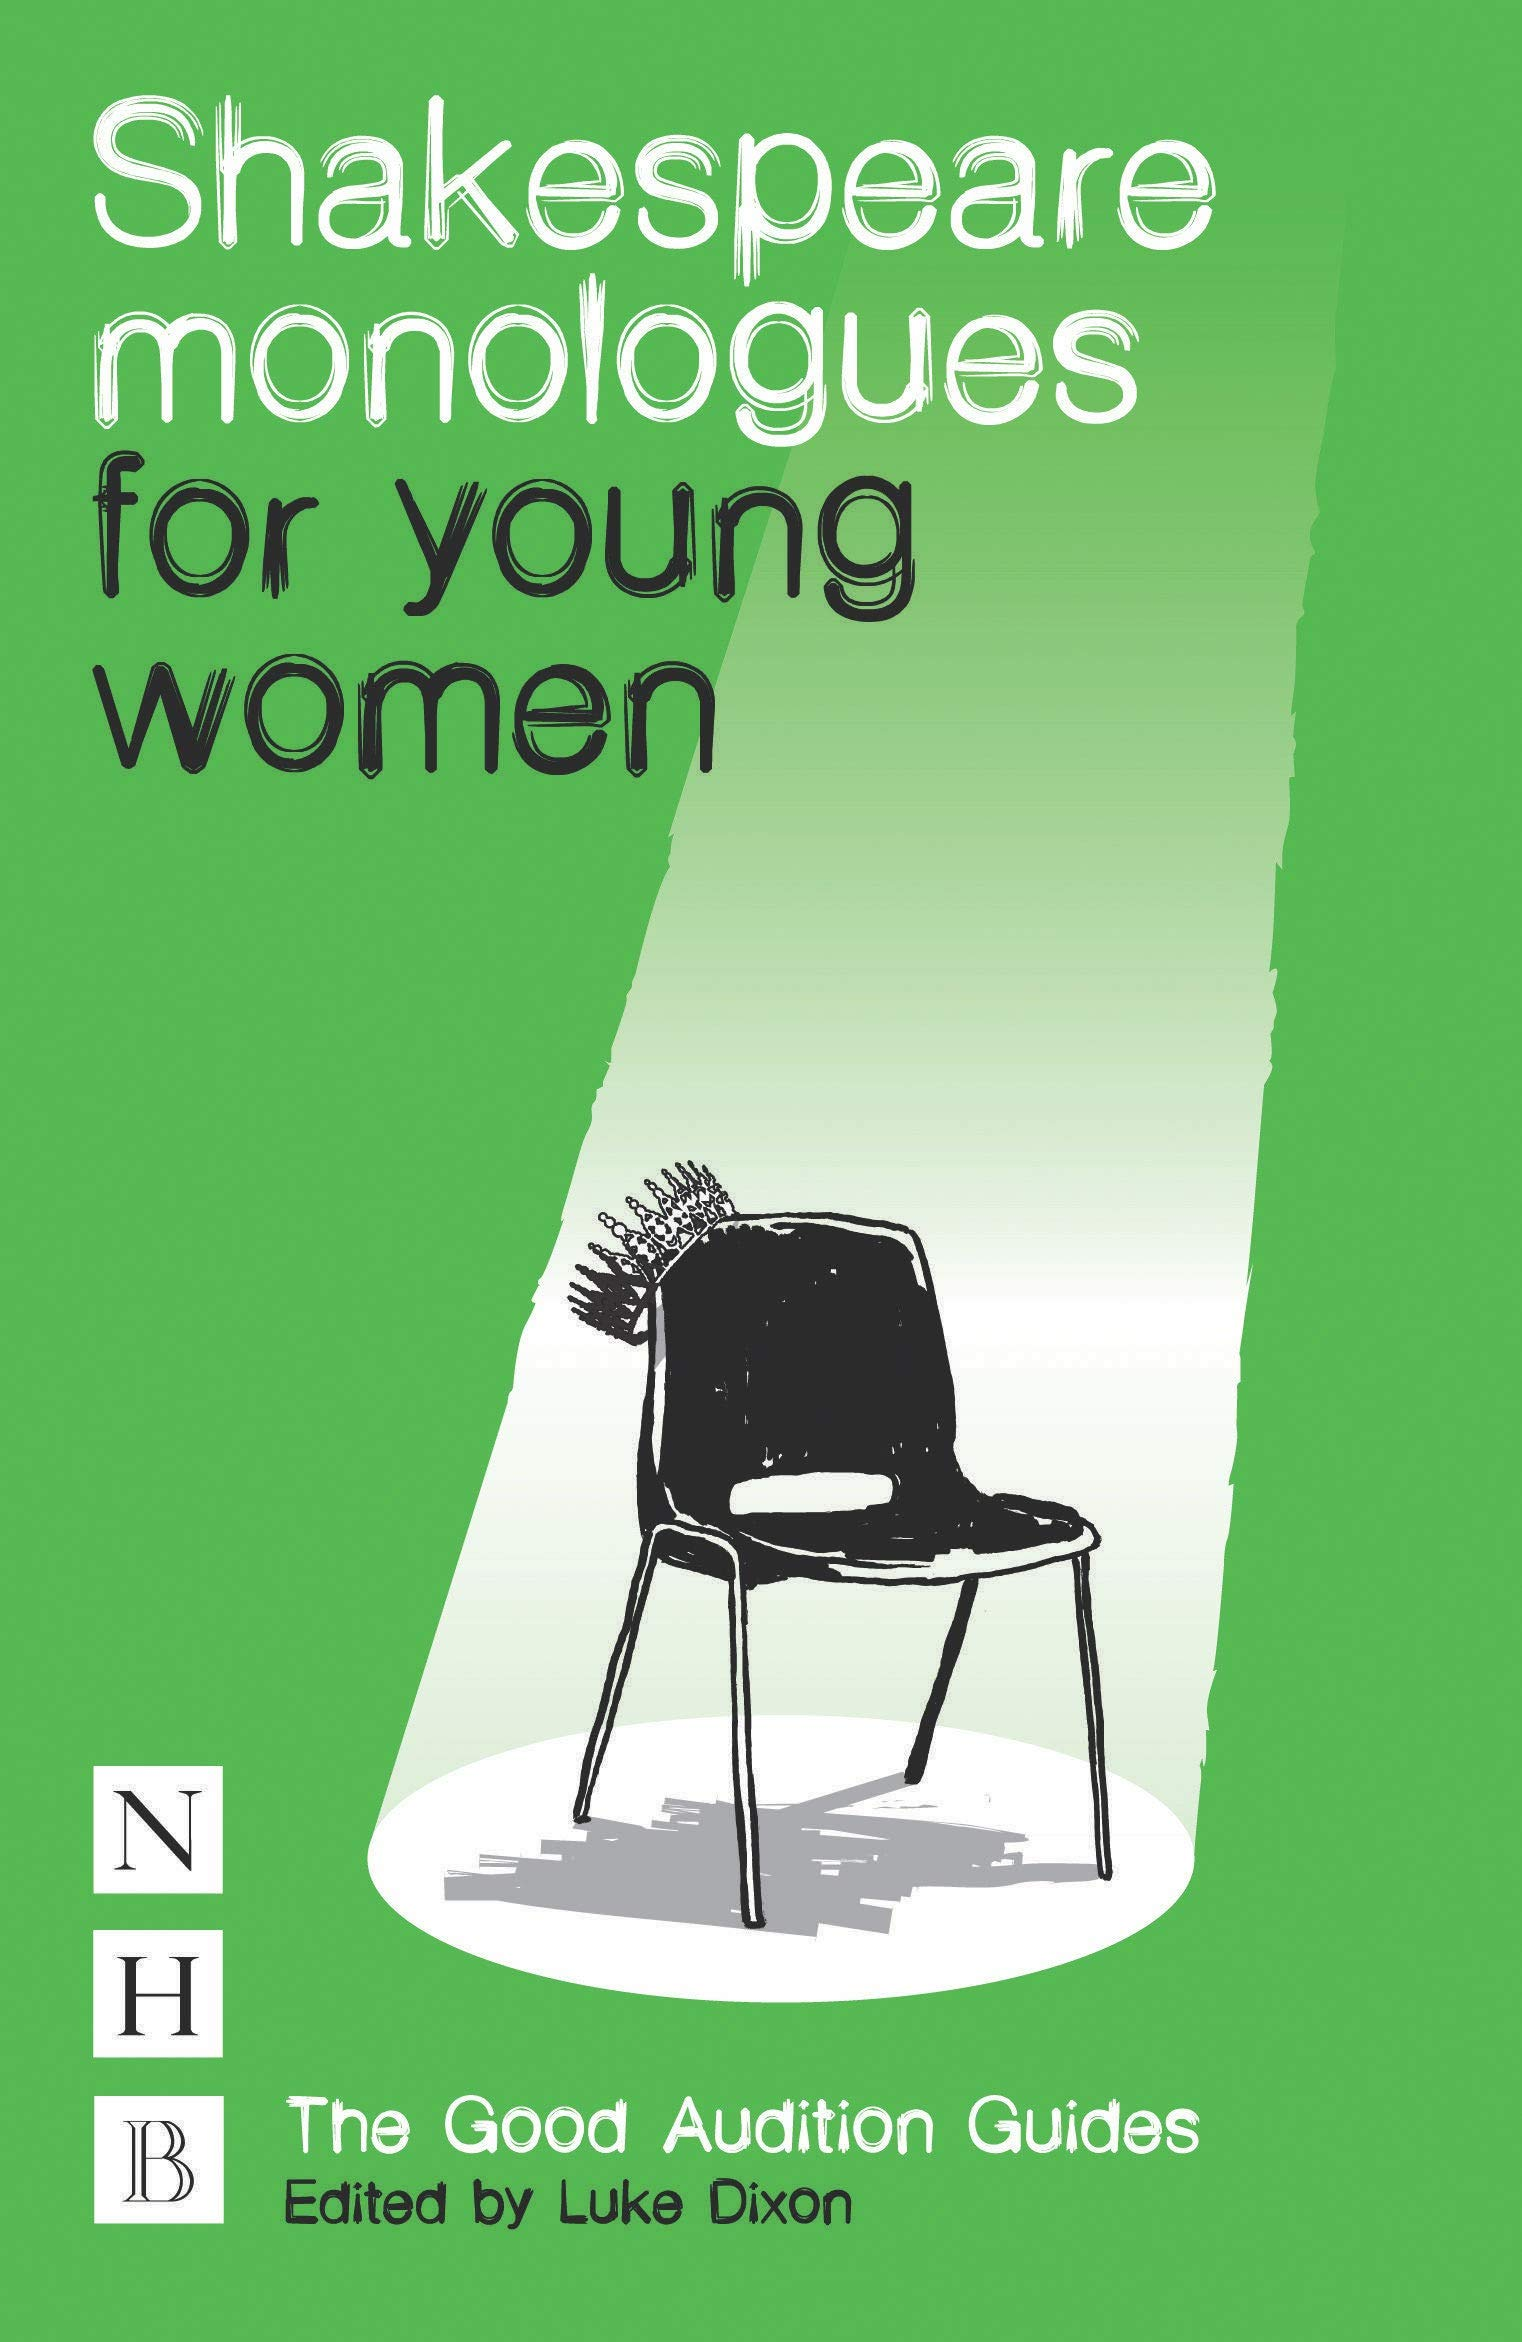 Shakespeare Monologues for Young Women NHB Good Audition Guides The Good  Audition Guides: Amazon.co.uk: William Shakespeare, Luke Dixon: Books